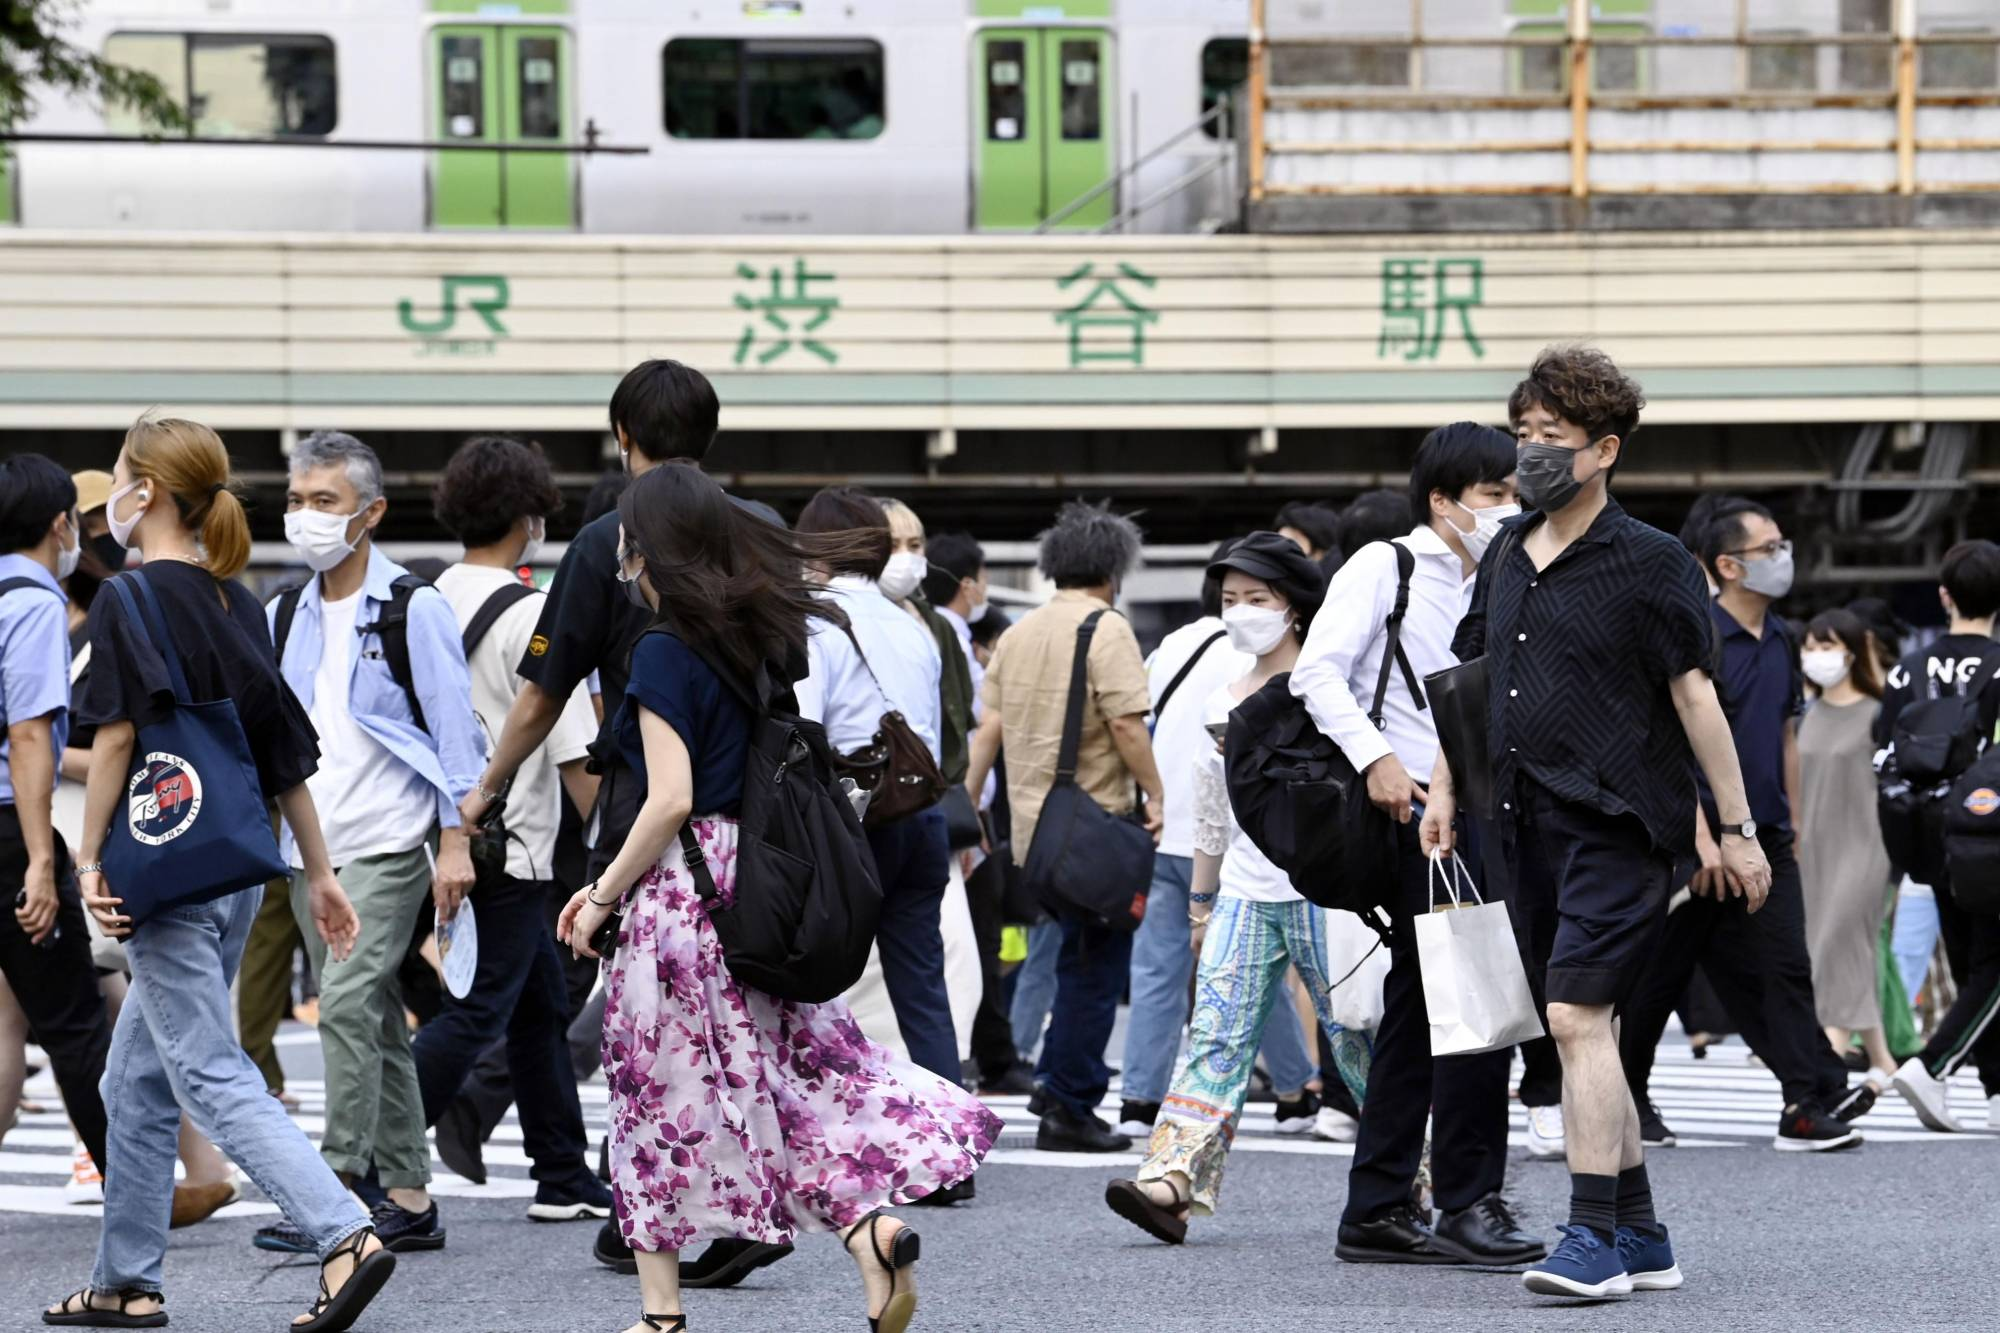 Crowded streets near Tokyo's Shibuya Station on Thursday, despite rising COVID-19 numbers | KYODO